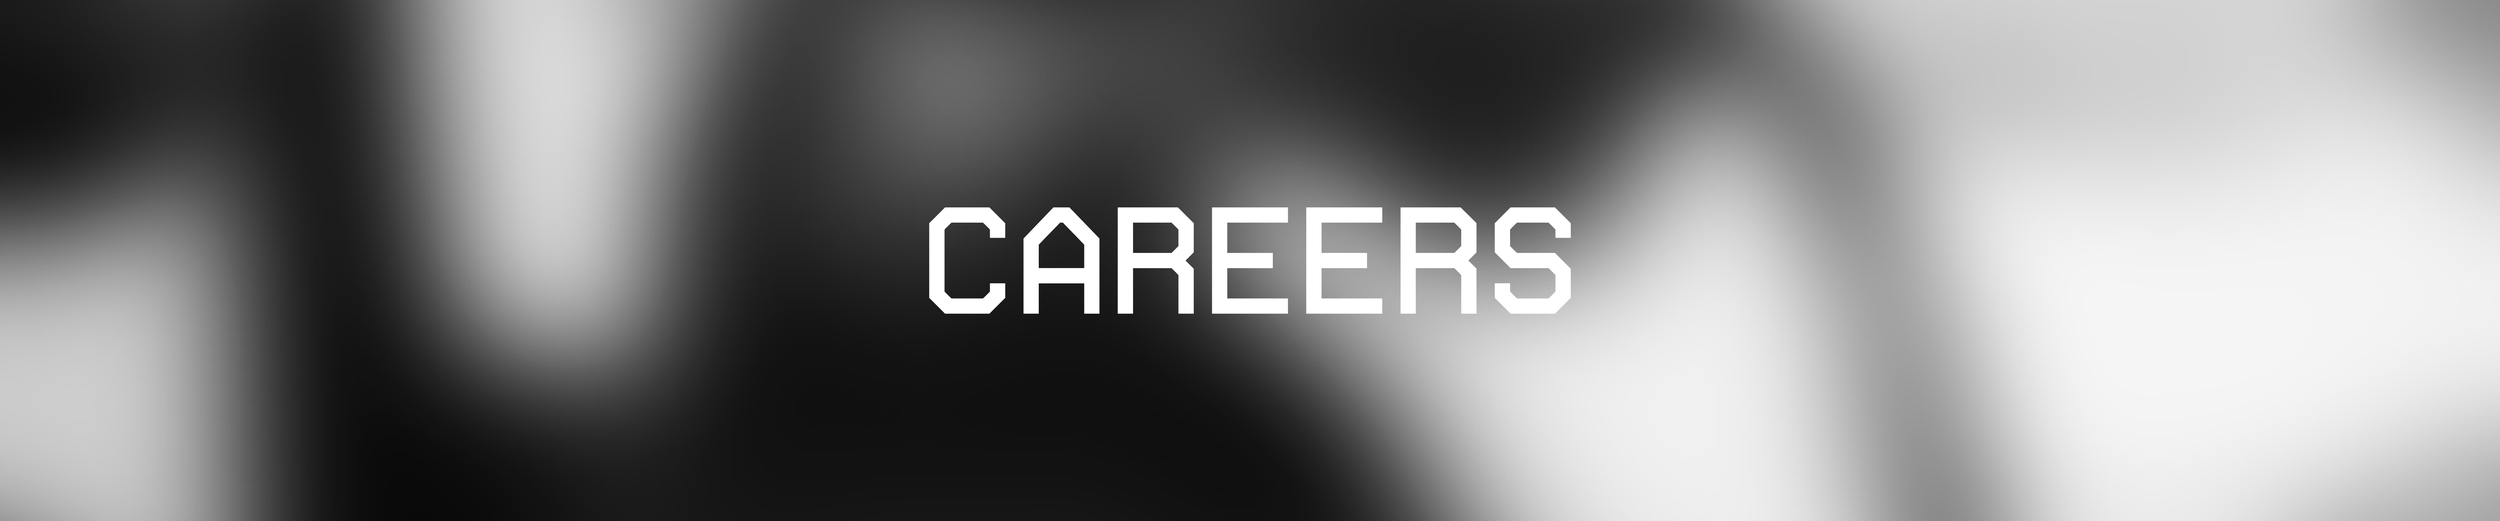 SW CAREERS banner-01.png